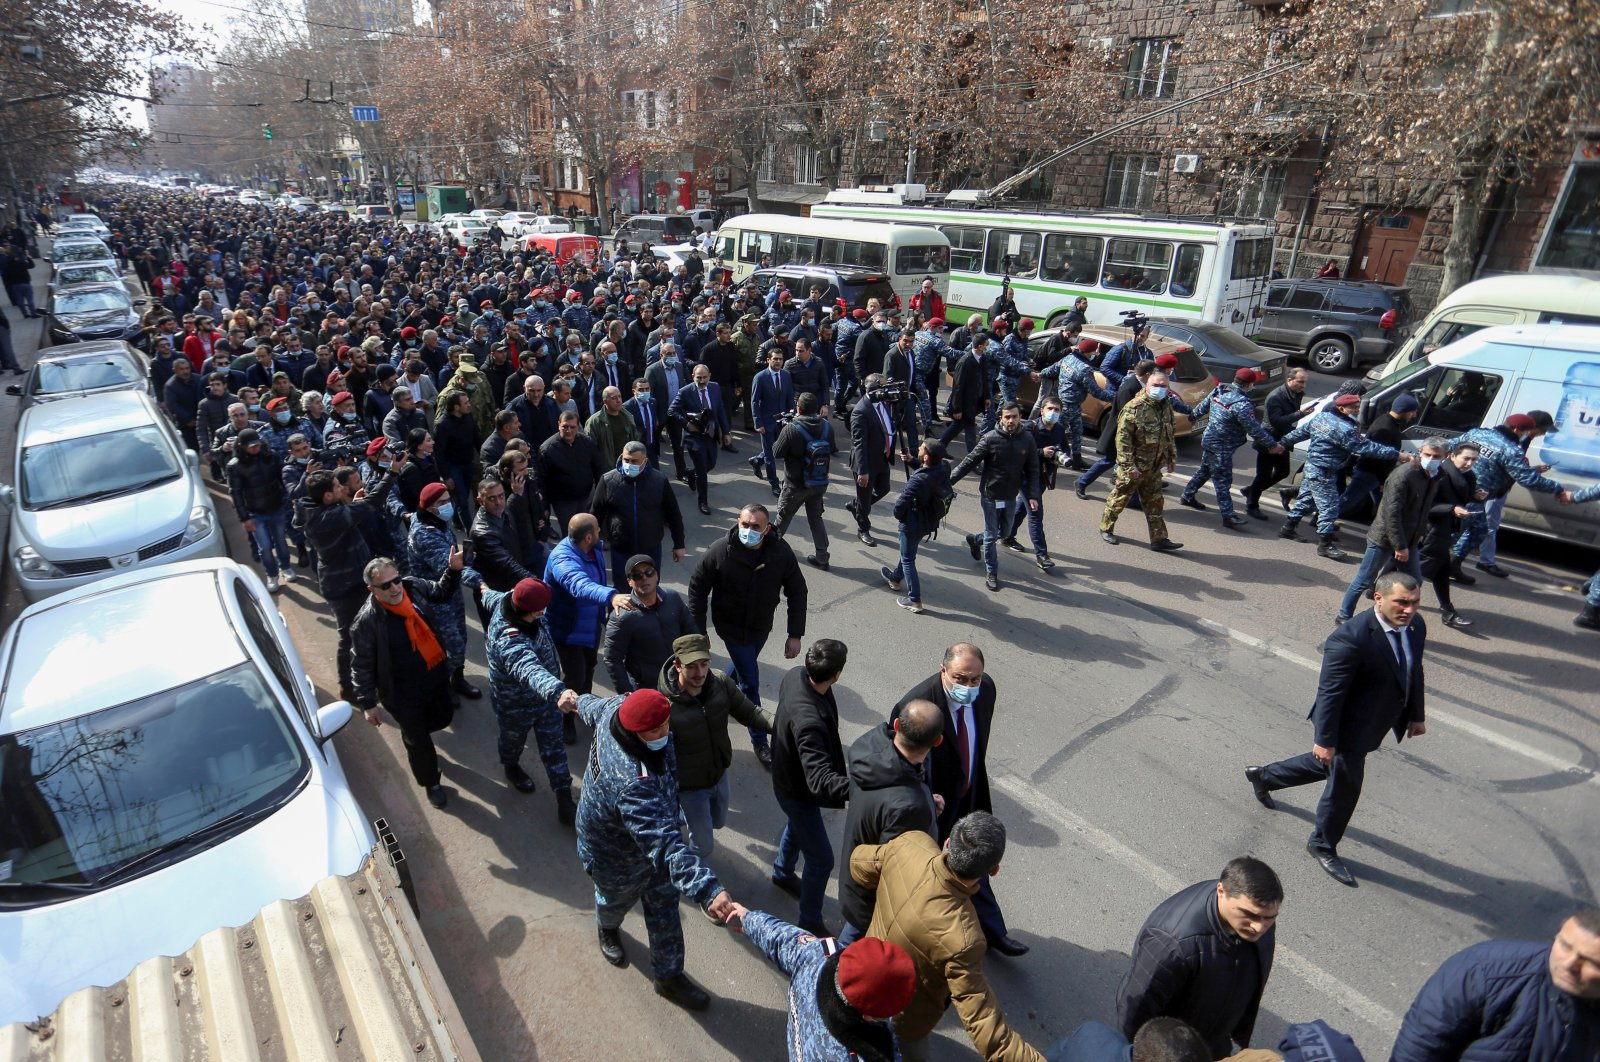 Armenian Prime Minister Nikol Pashinyan and his supporters march during a rally in Yerevan, Armenia Feb. 25, 2021. (Reuters)